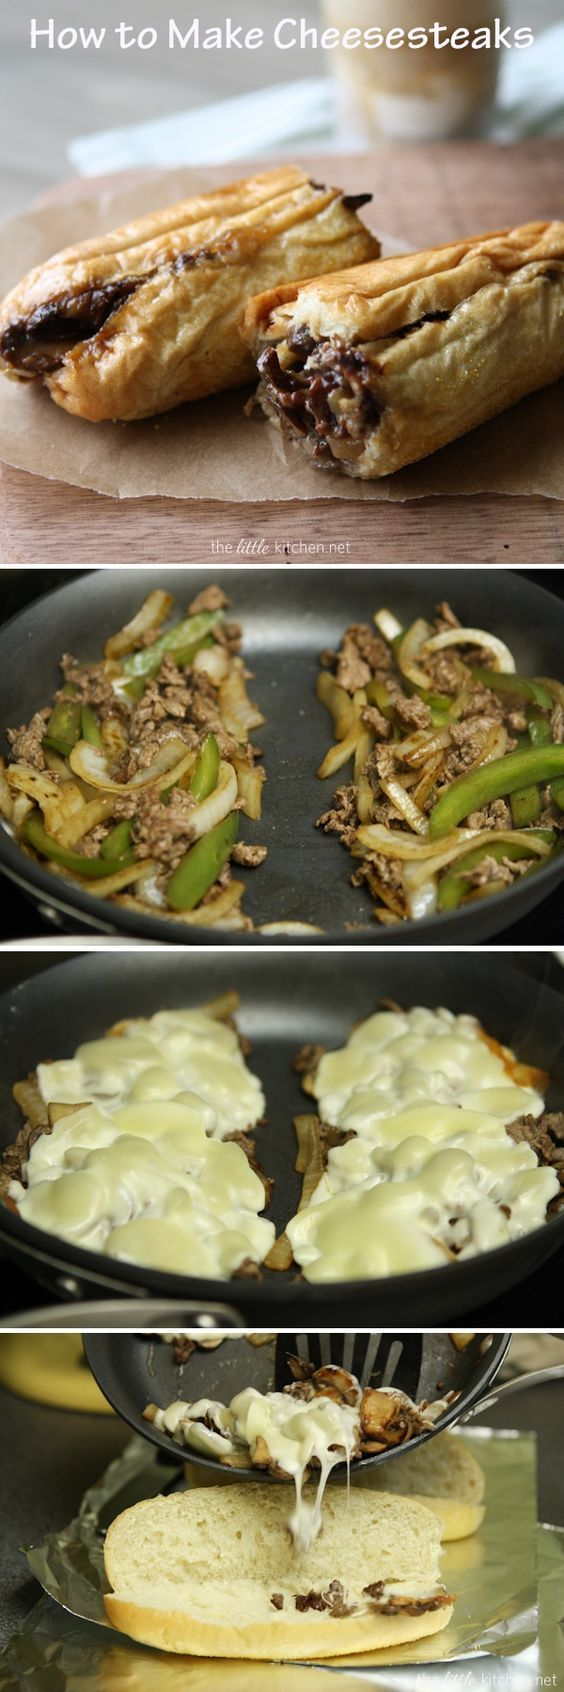 Easy Philly Cheesesteaks Recipe. Tastes Just Like The Sandwich Shop Down The Street! I LOVE These Easy Cheese Steaks.. My Kids Go Crazy For This.